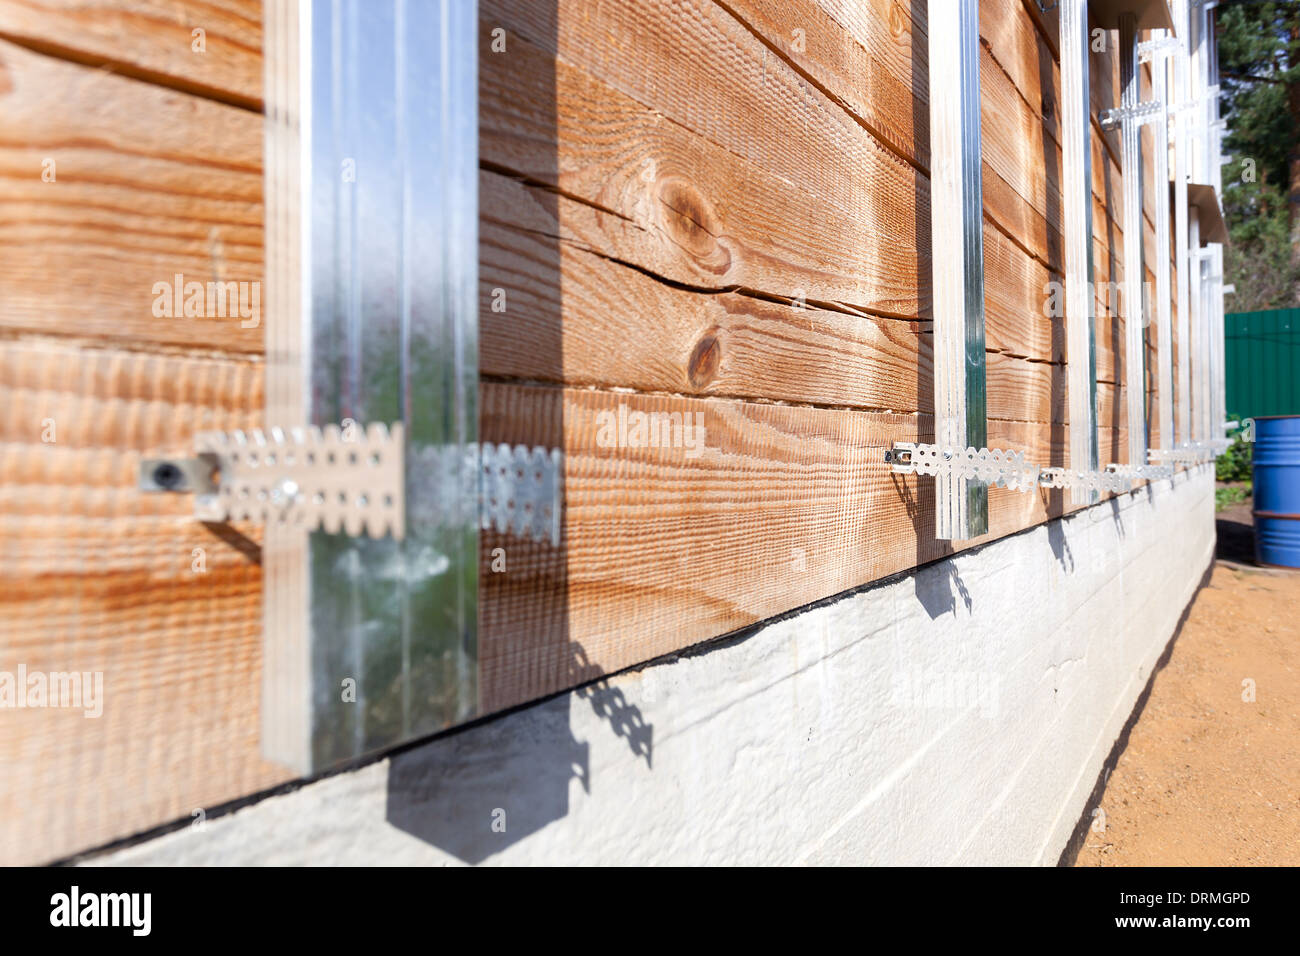 Building house, installation of galvanized crate, preparing for insulation and siding - Stock Image